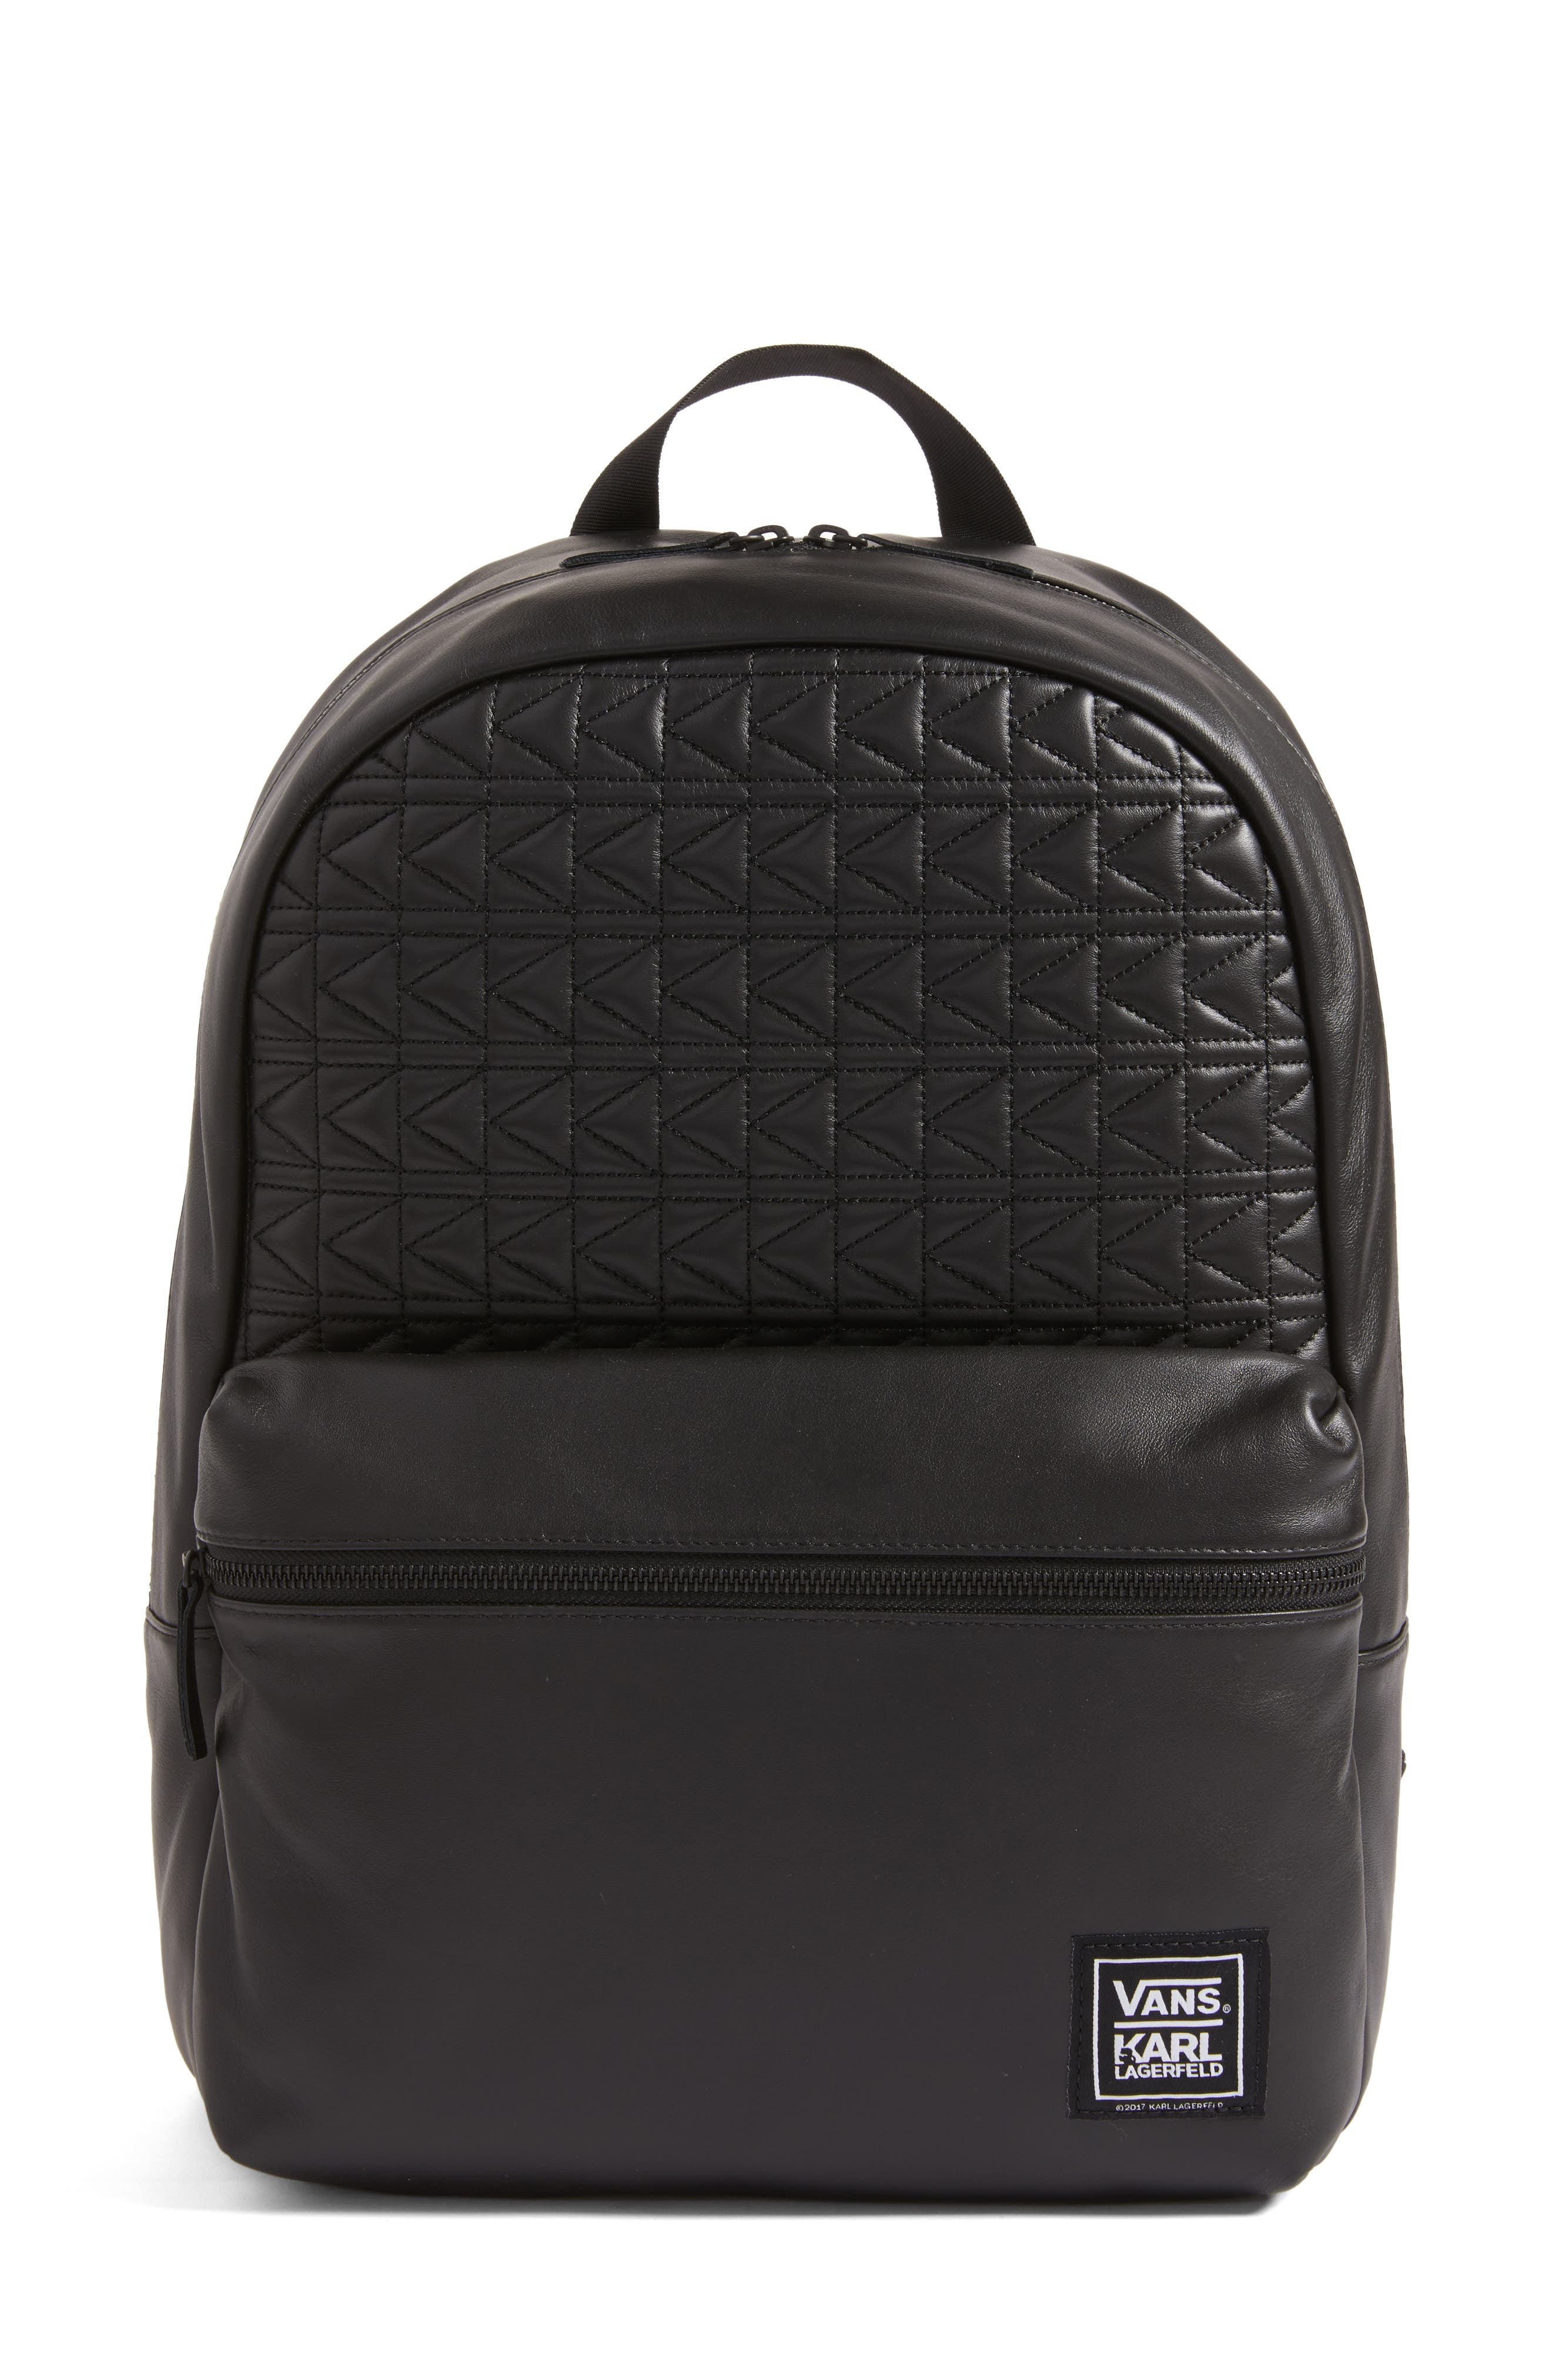 Vans x KARL LAGERFELD Quilted Leather Backpack